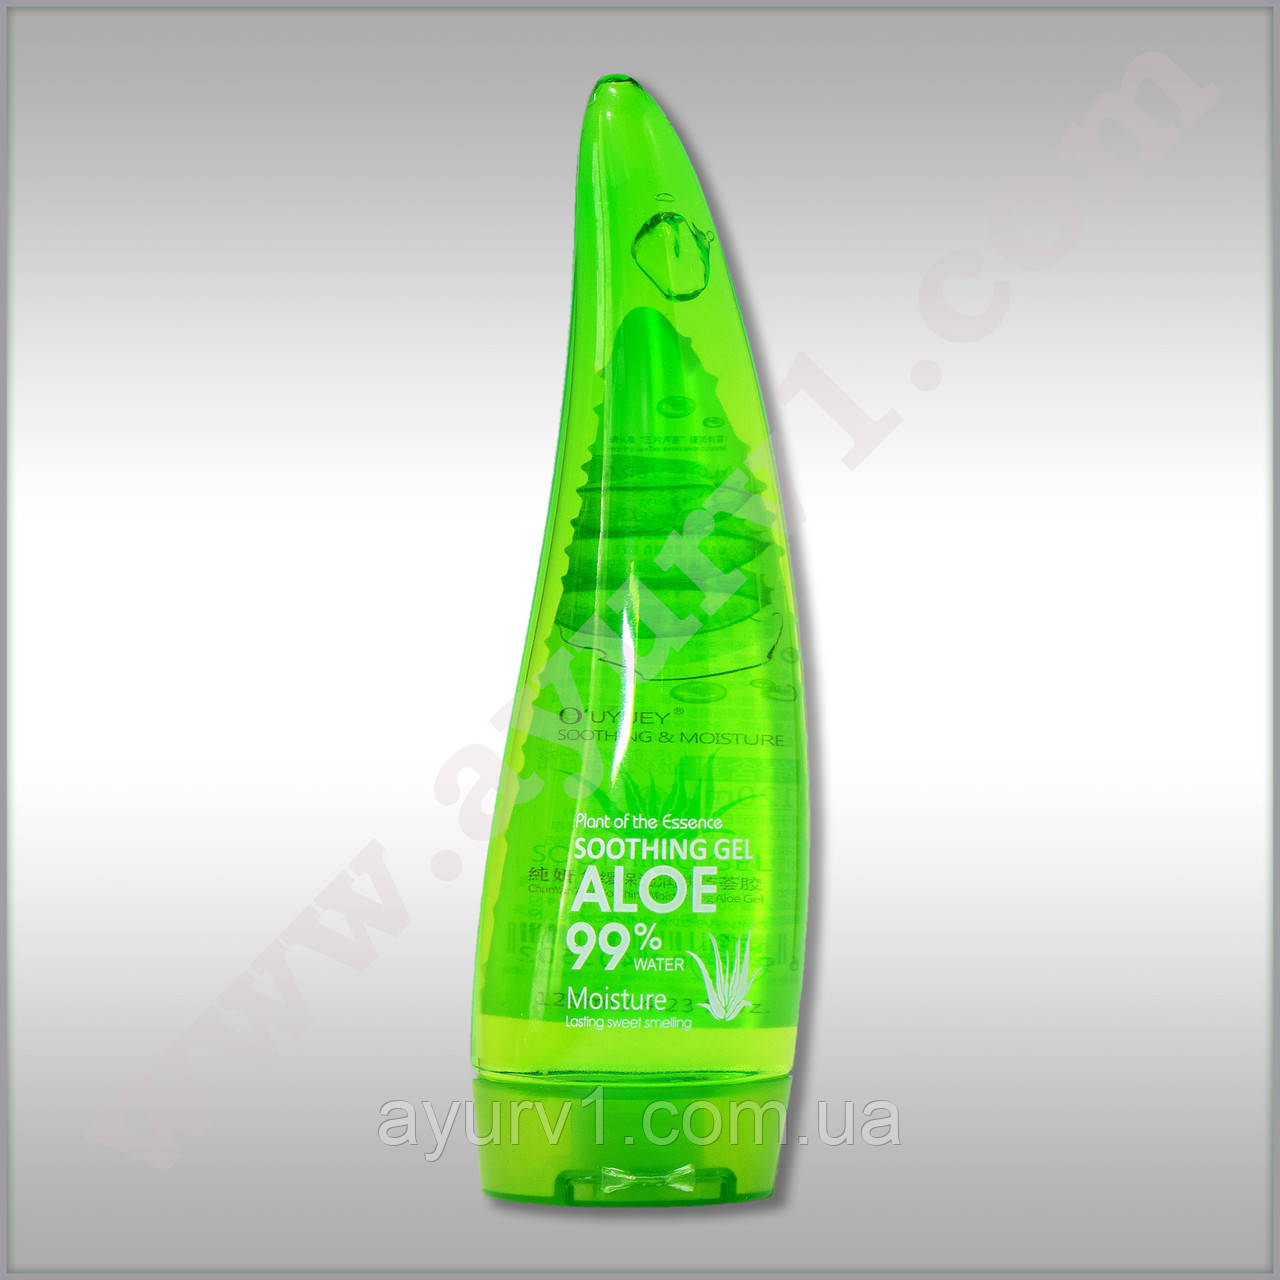 Гель Алое Aloe 99% Soothing Gel 120 мл